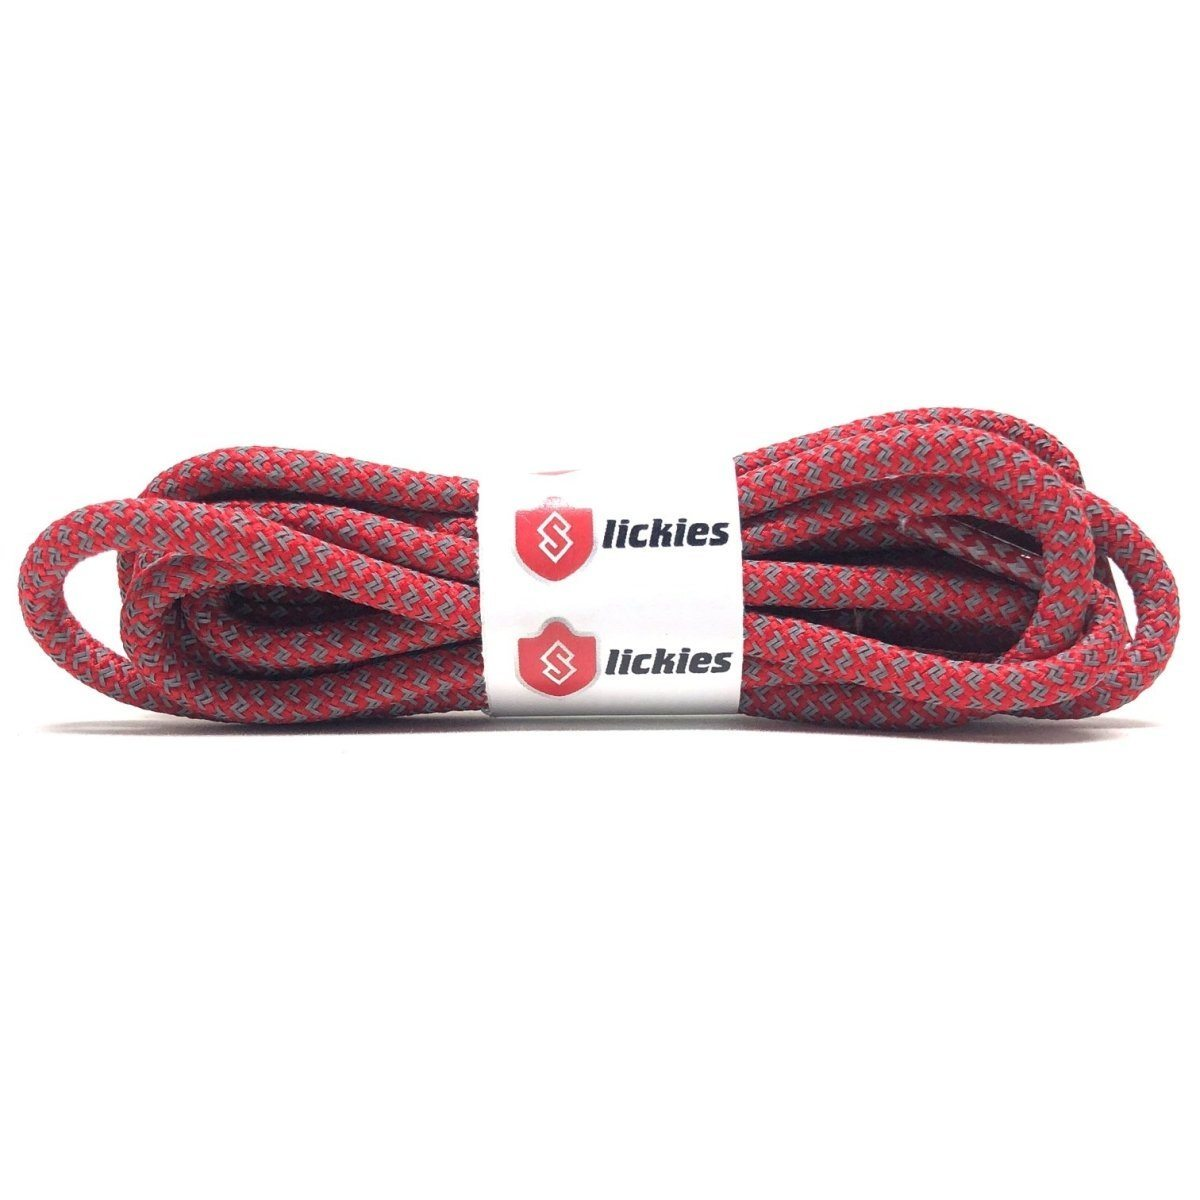 3M Rope - 3M Reflective Rope Laces - Static Red